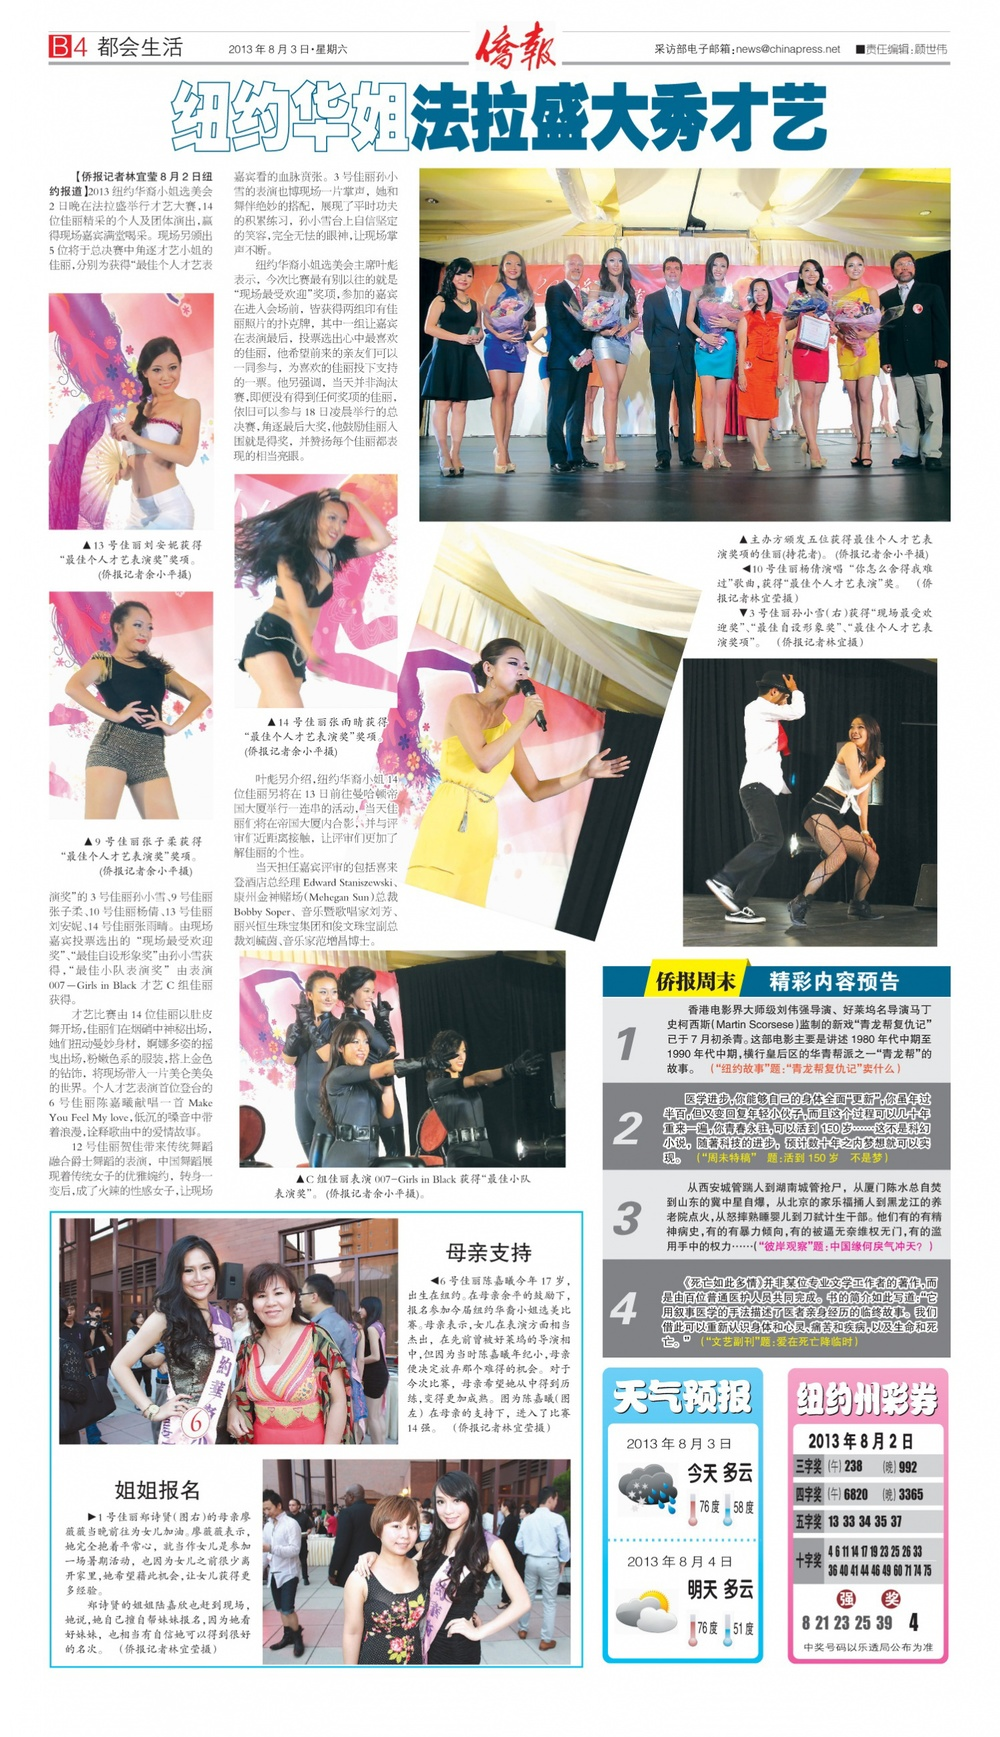 2013-08-02_Taleant show_China_Press.jpg